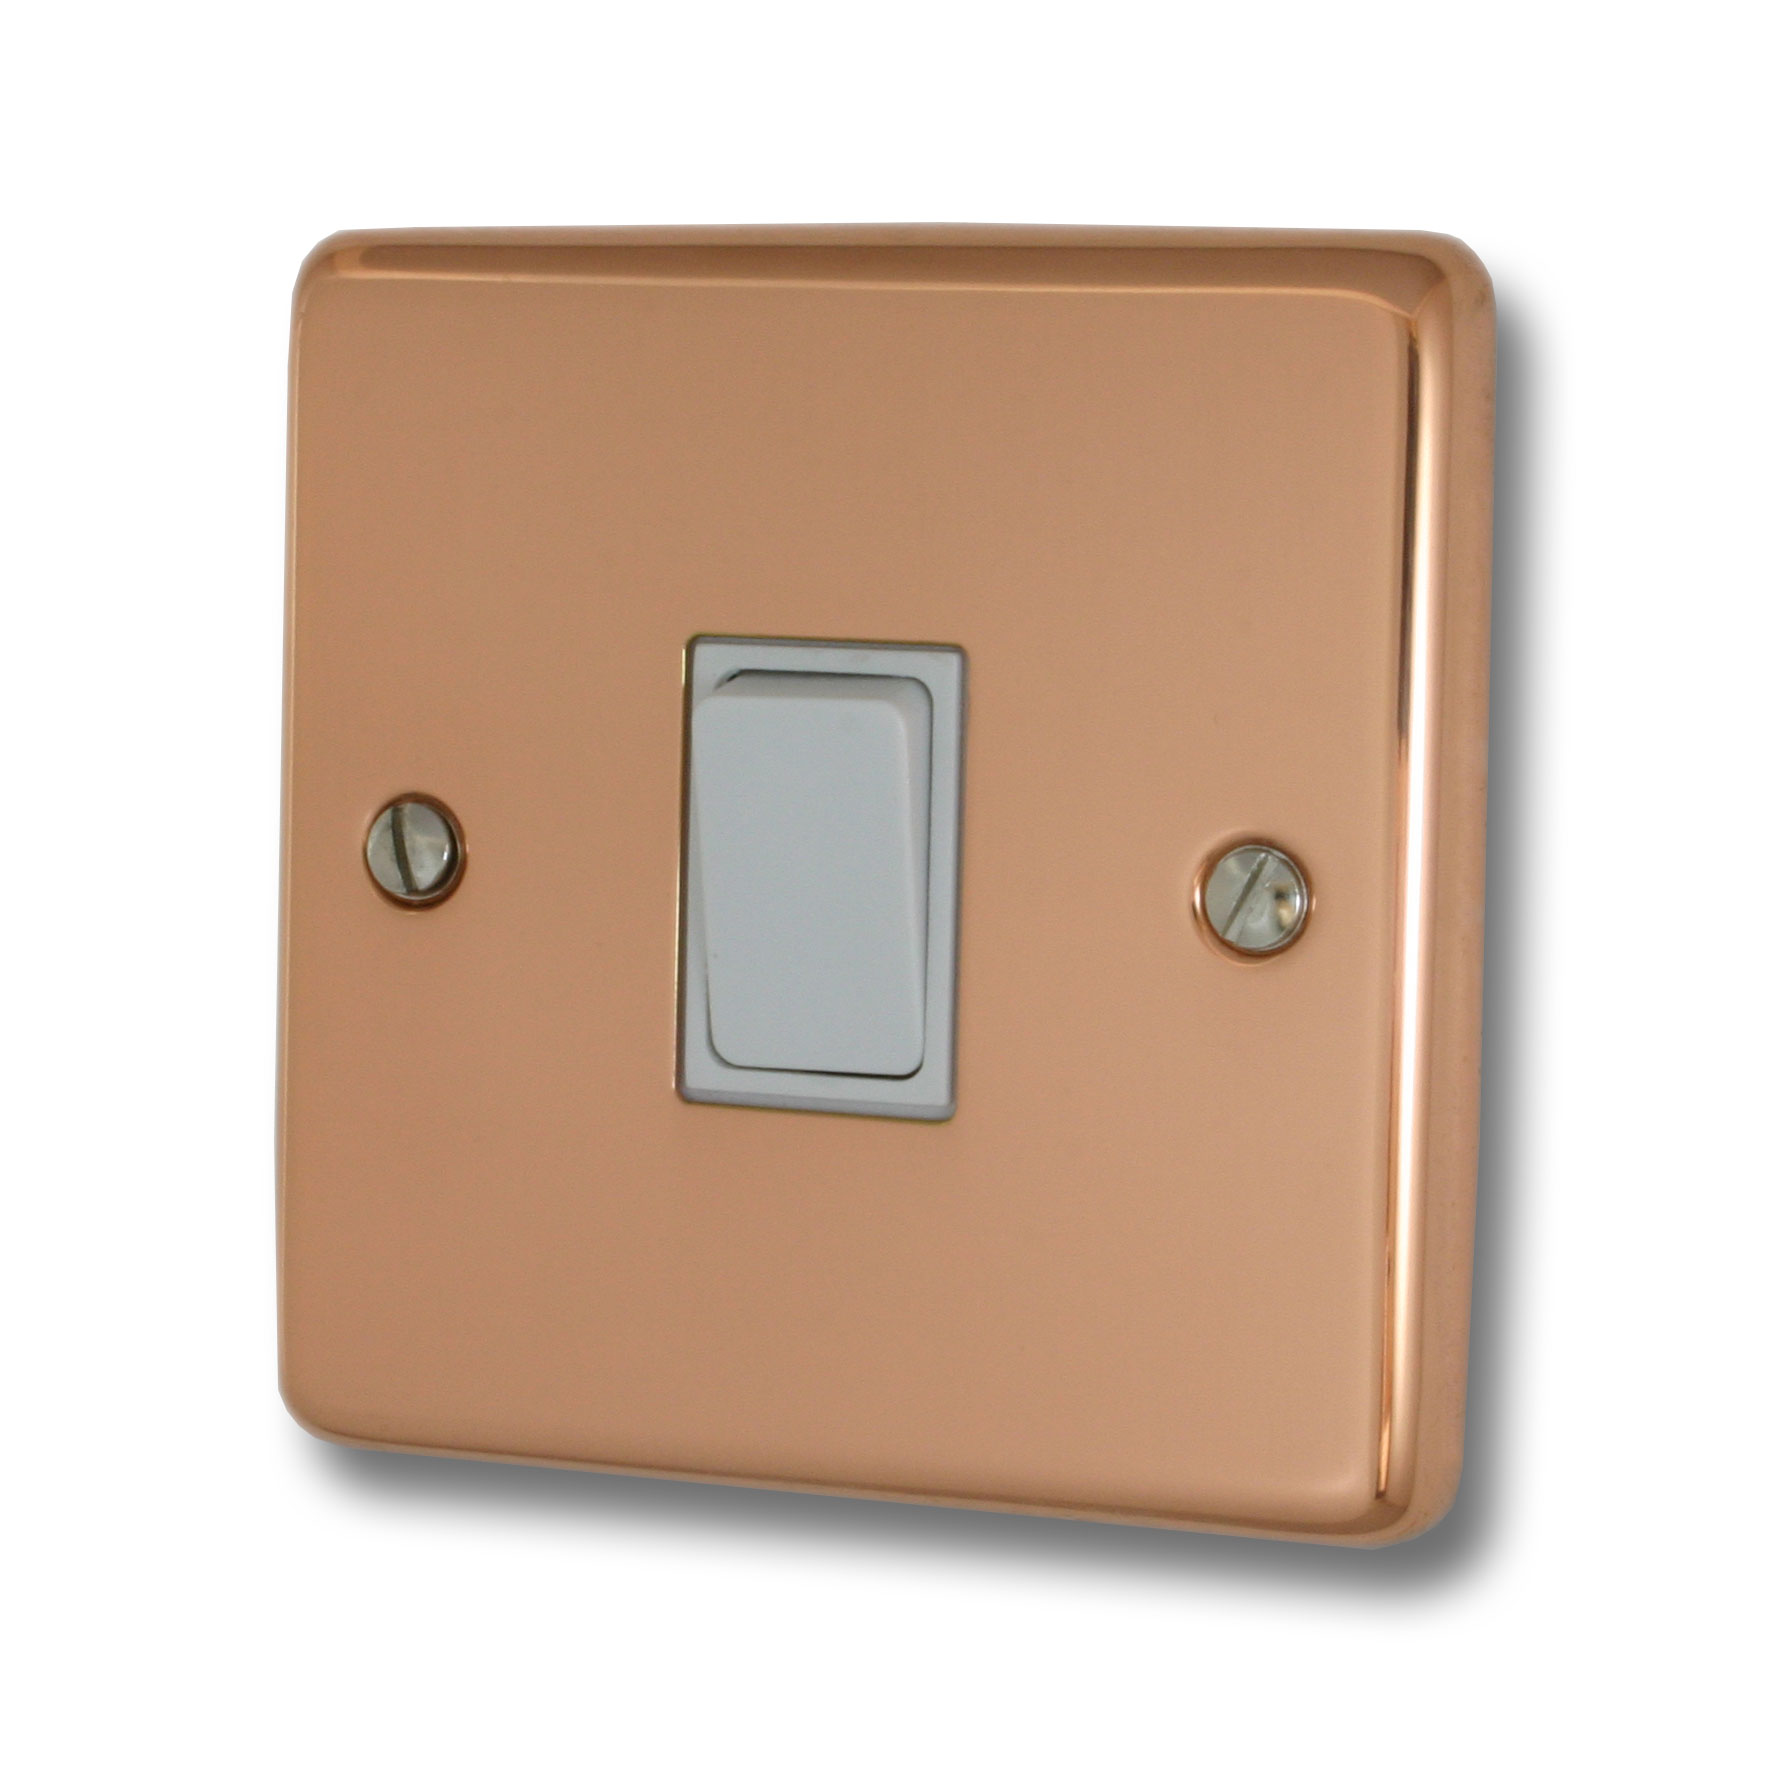 Copper Sockets and Switches